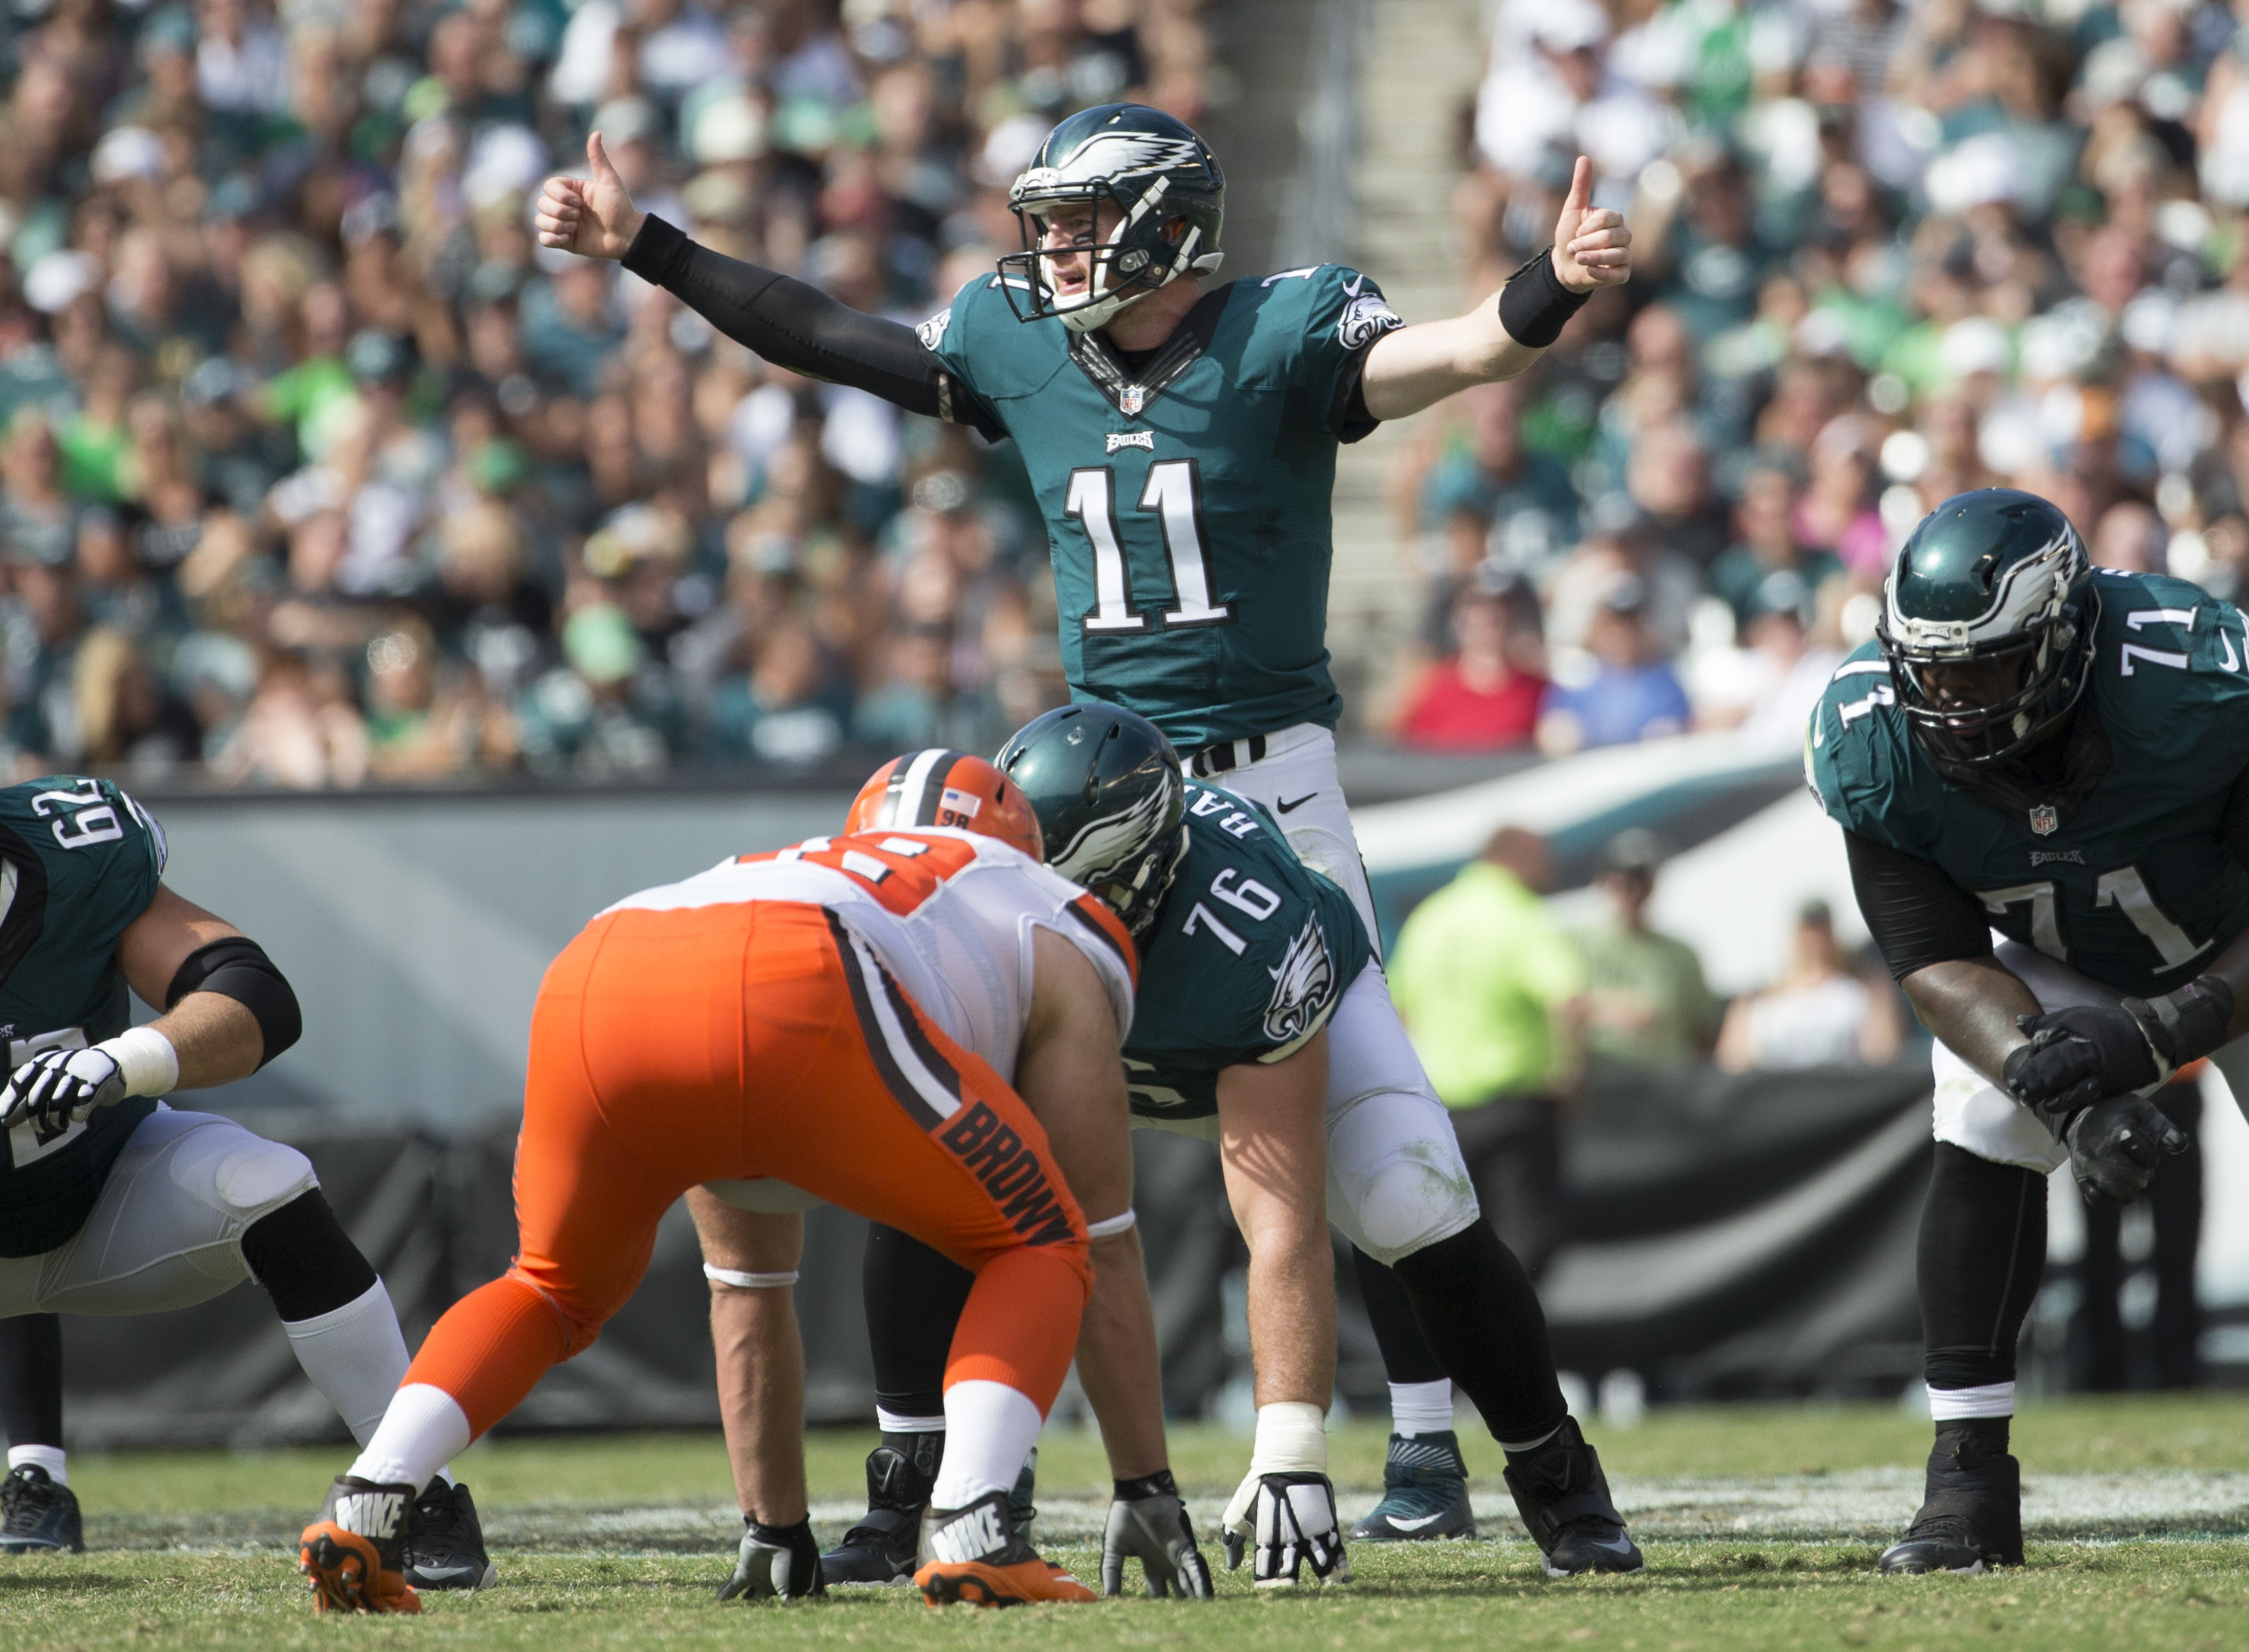 Eagles need a complete winning effort over Browns to change momentum